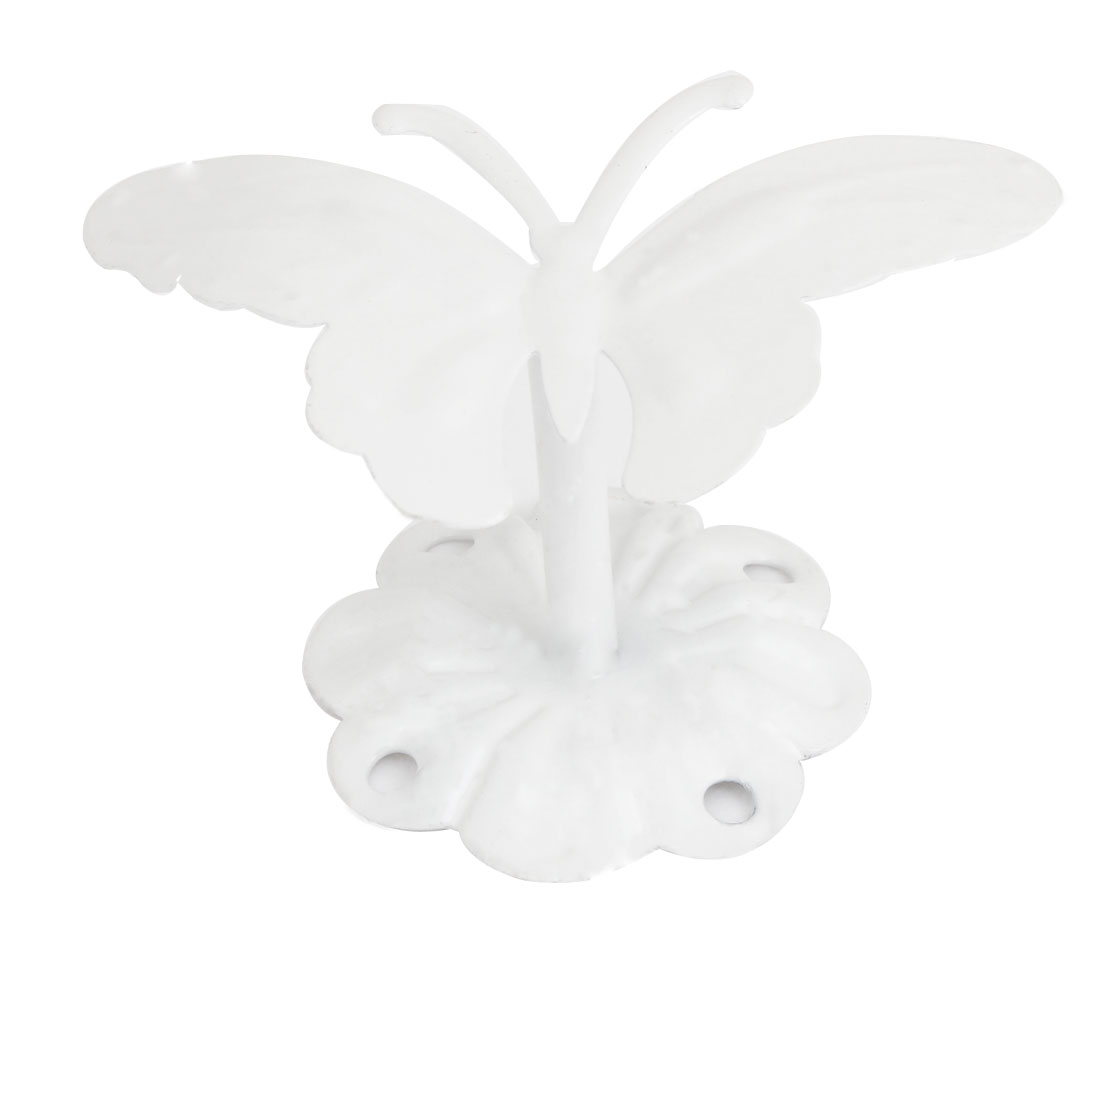 2.0kg Load Off White Butterfly Shaped Metal Wall Hook Hanging Hanger w Screws